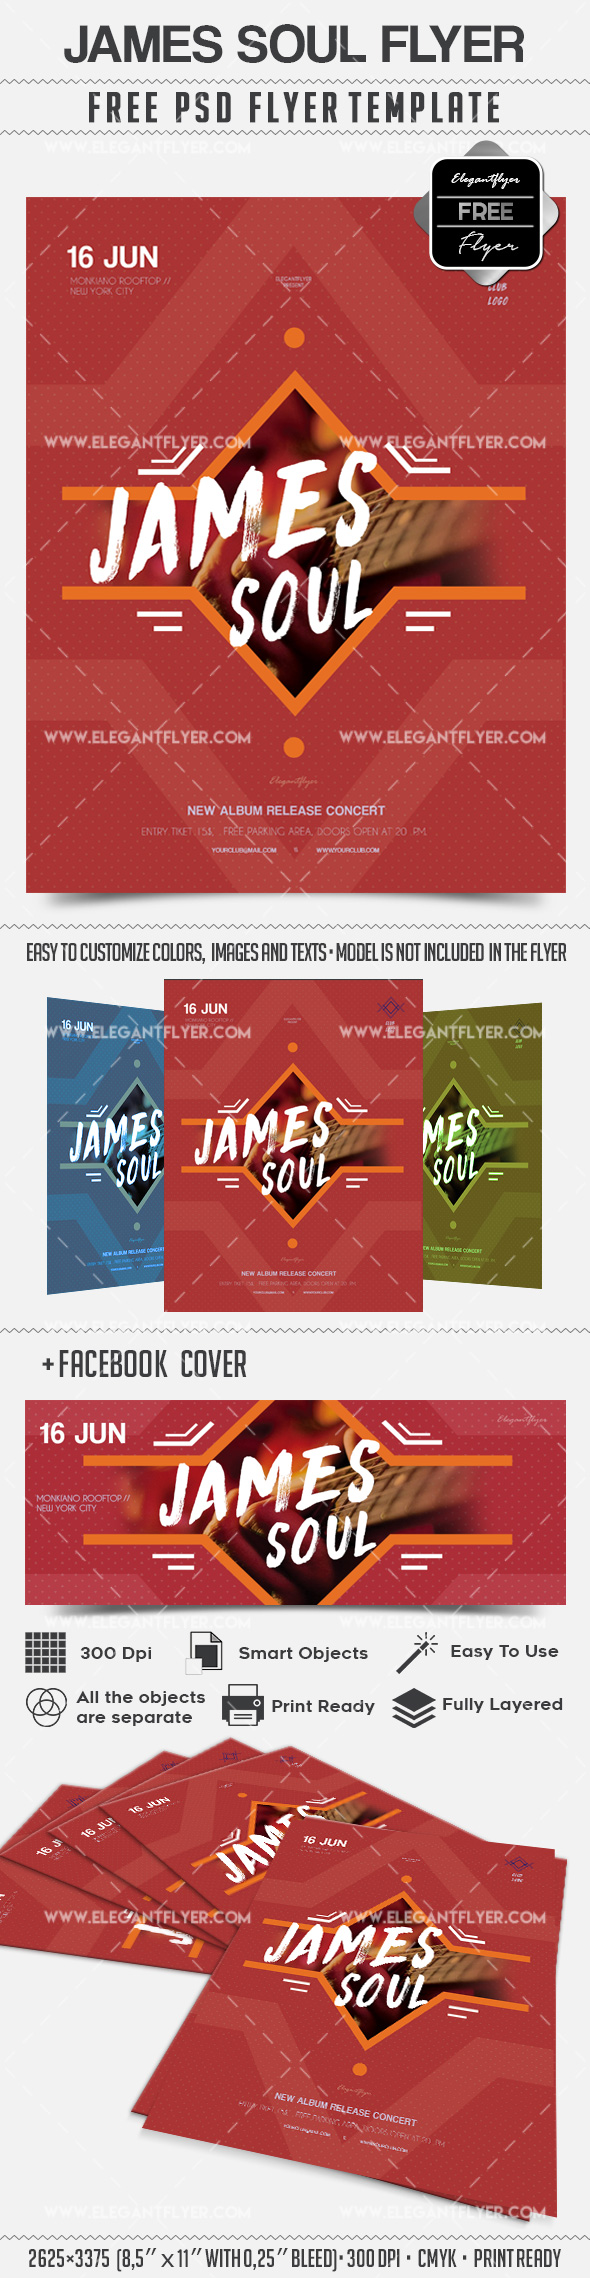 James Soul Concert – Flyer PSD Template